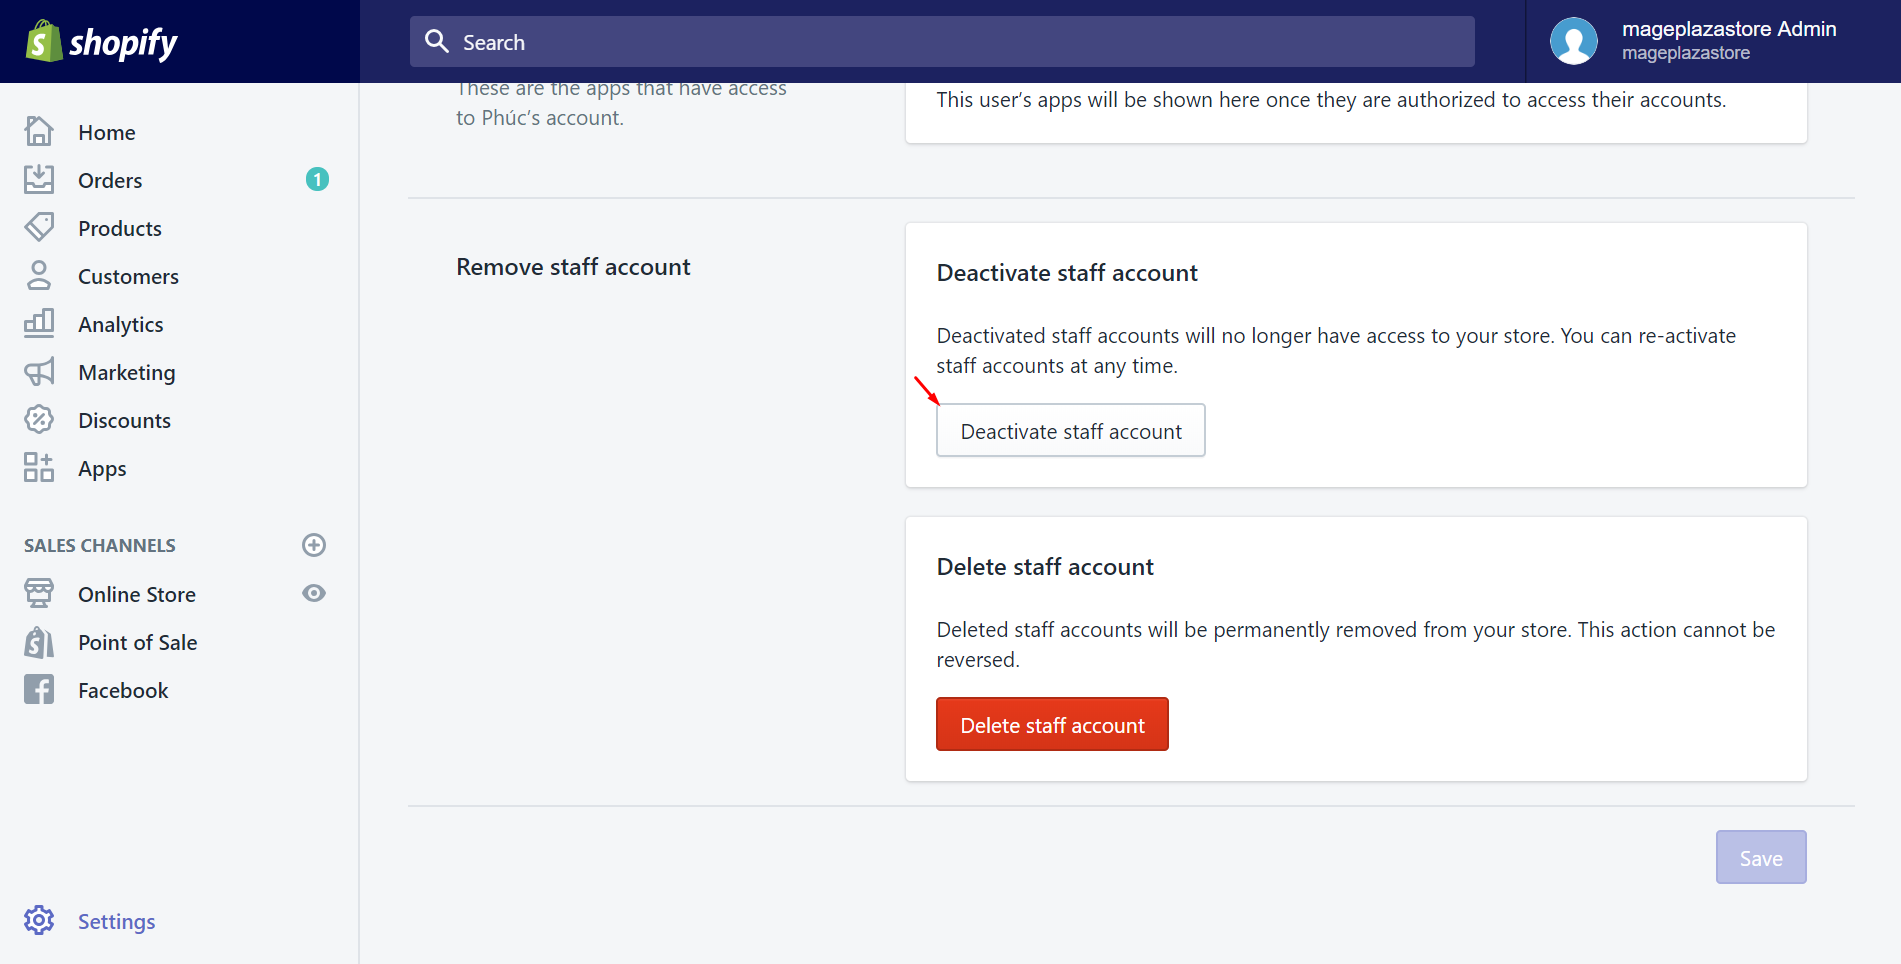 How to deactivate a staff account